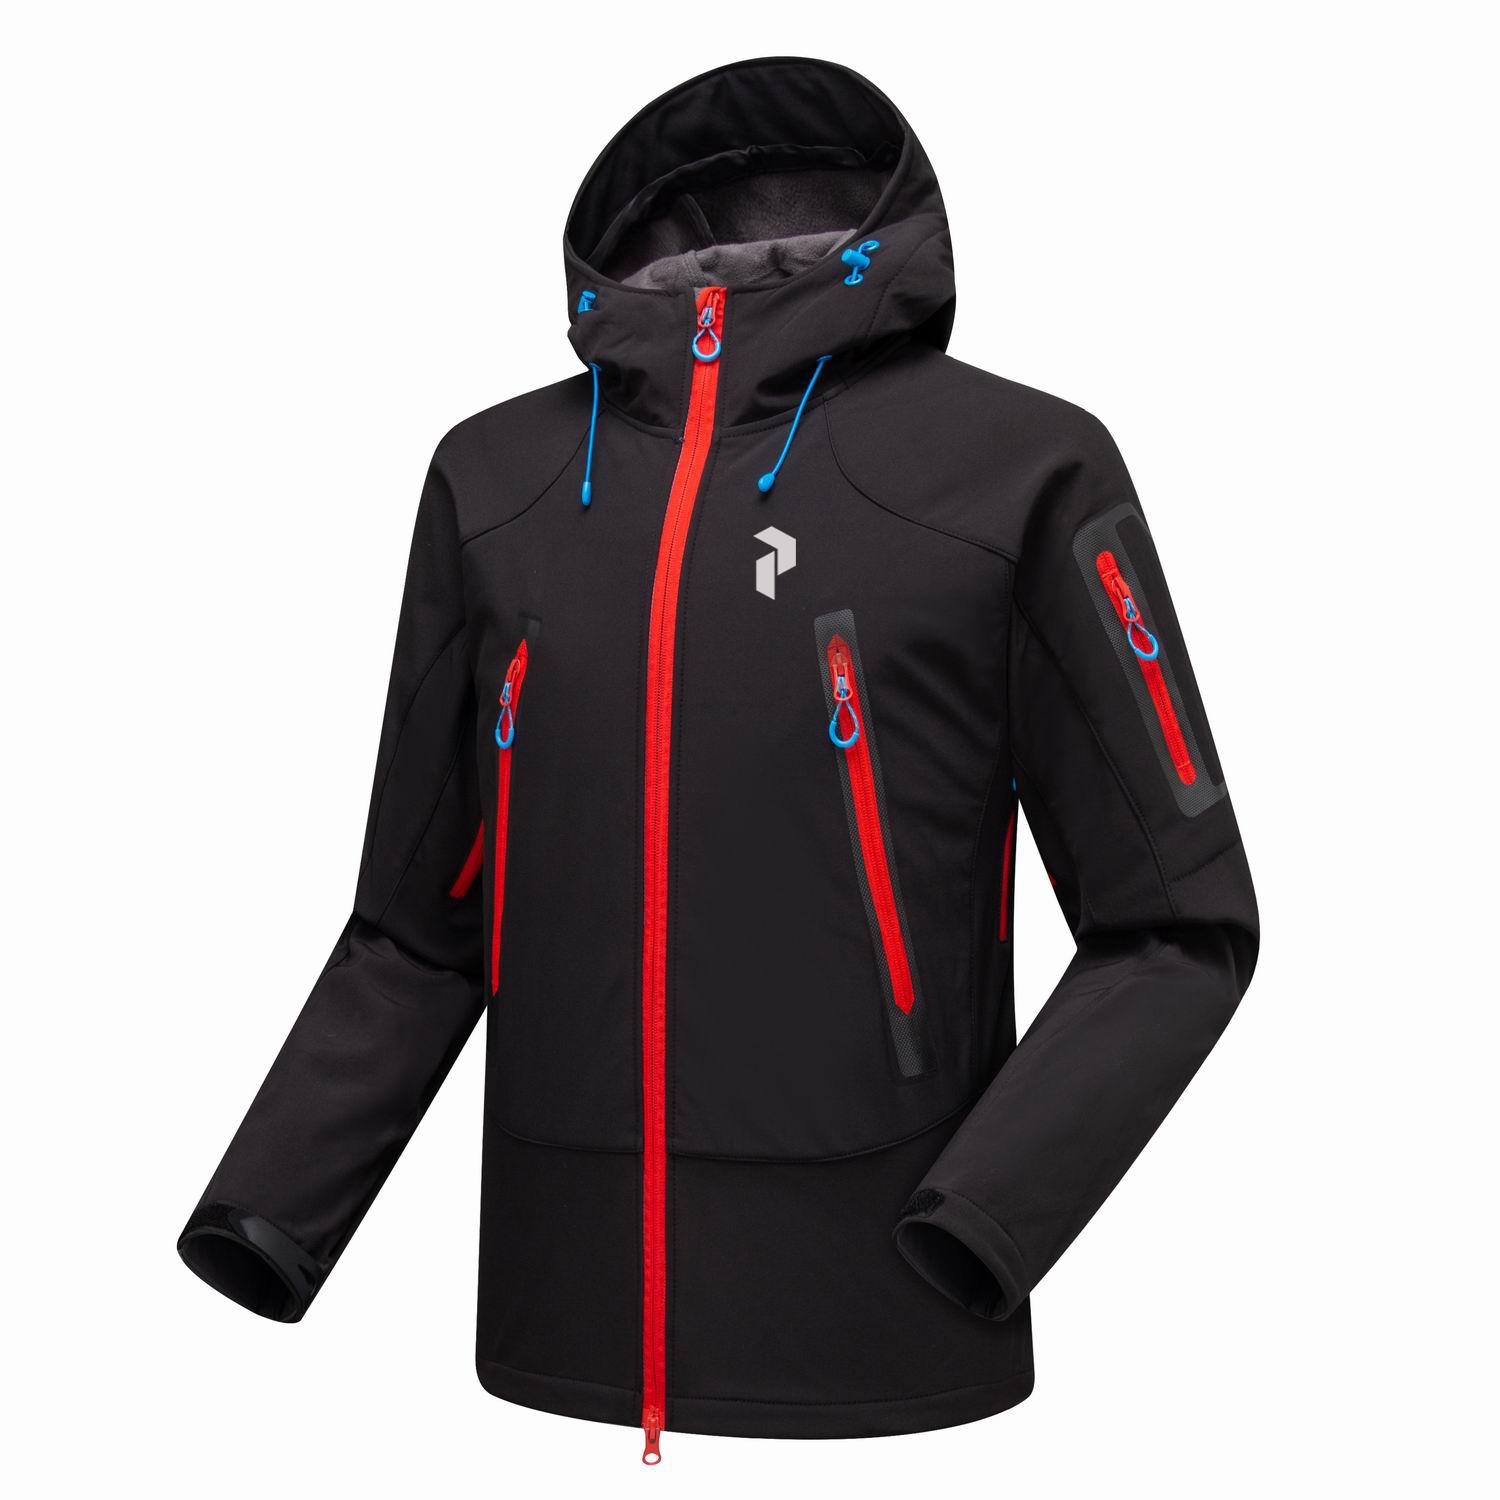 HOT The new autumn and winter PEAK fleece sweater jacket soft shell jackets for men norte face outdoor sports clothes free shipping 01460